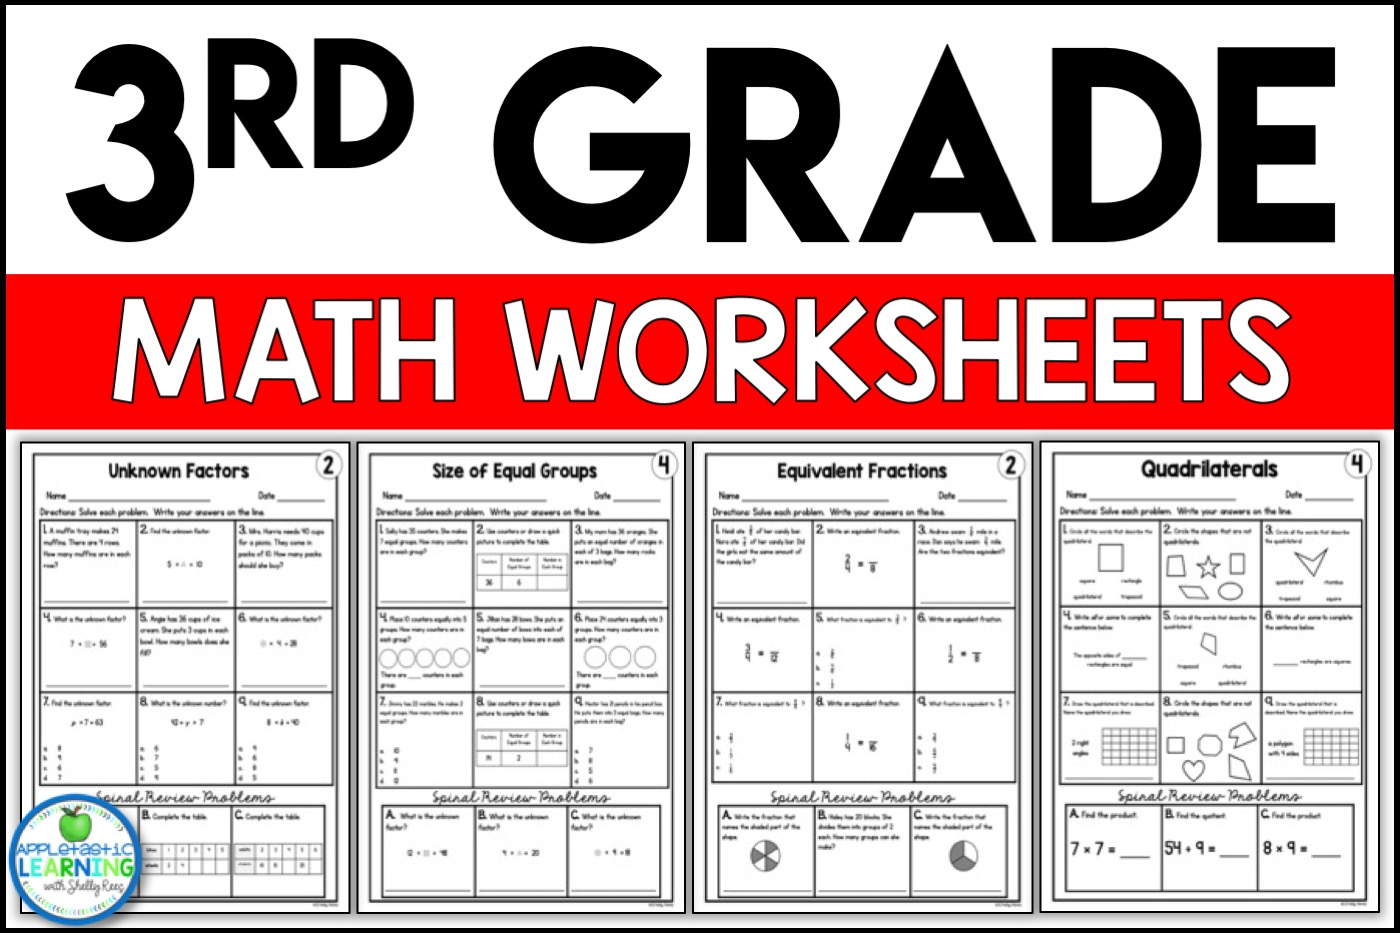 3rd Grade Math Worksheets Free And Printable